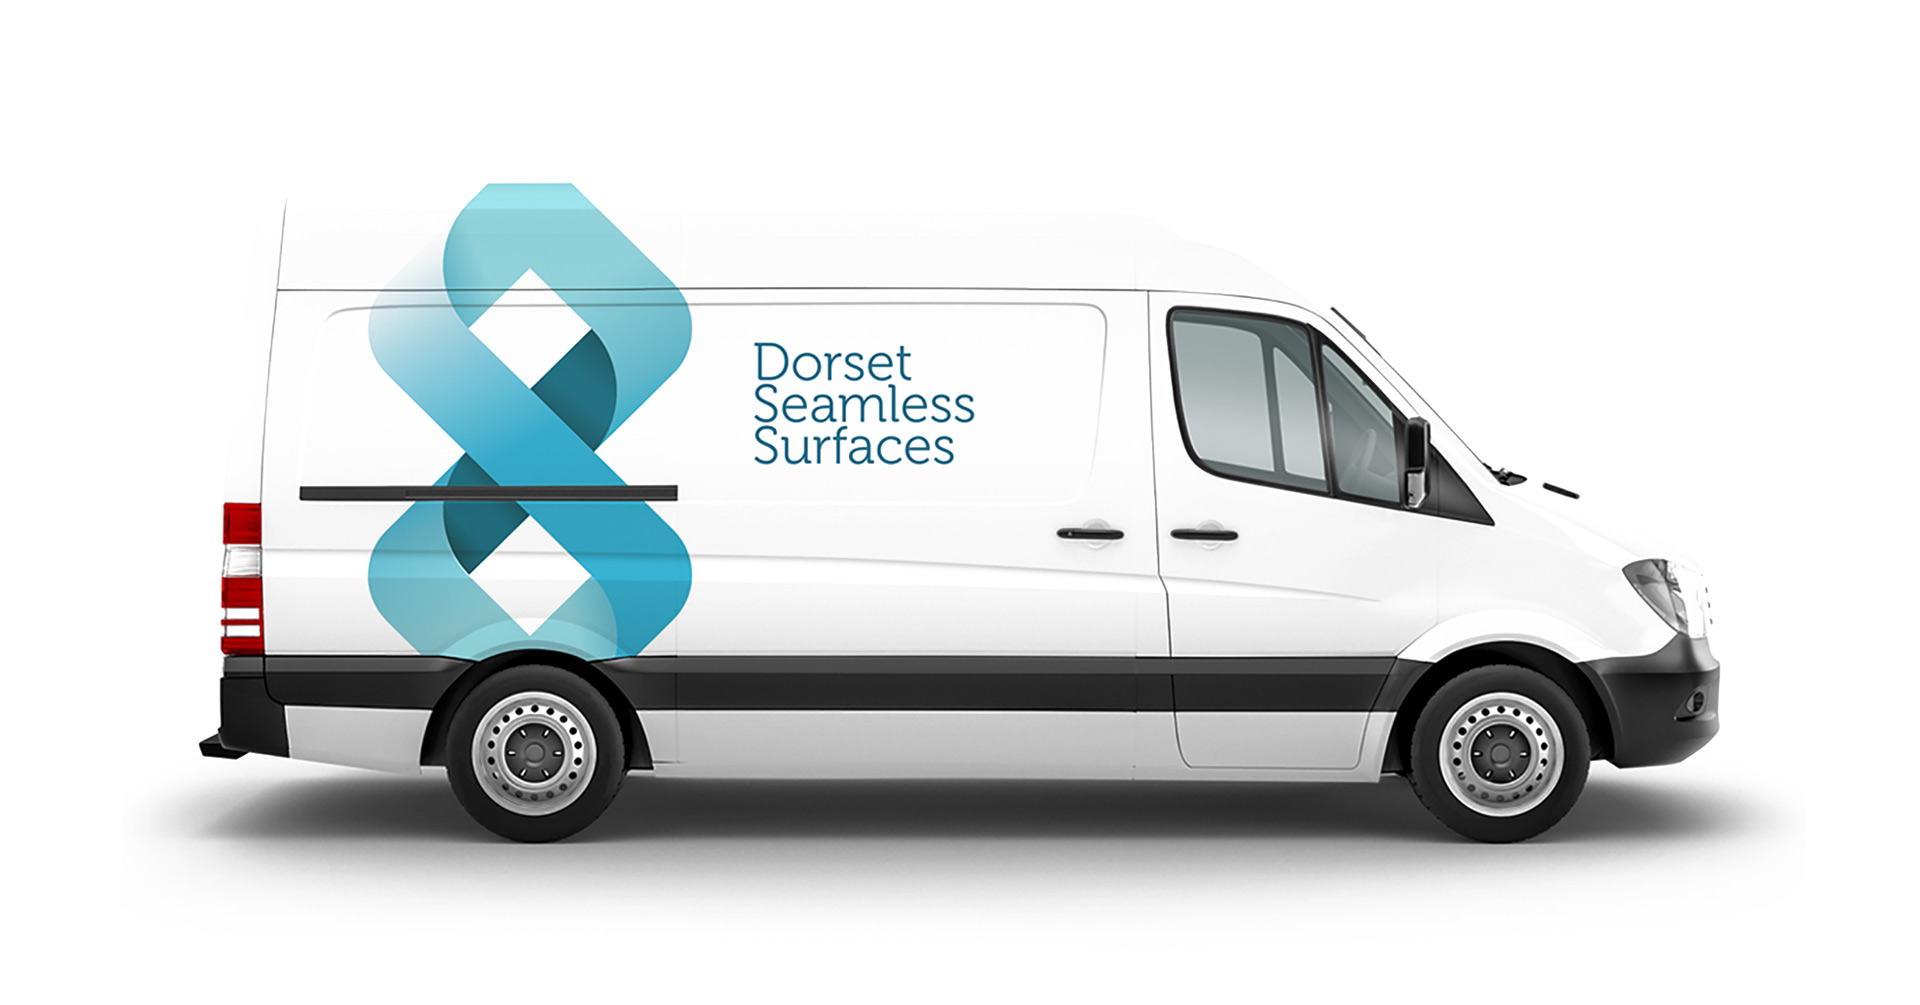 Dorset Seamless Surfaces – Branding a Small Business